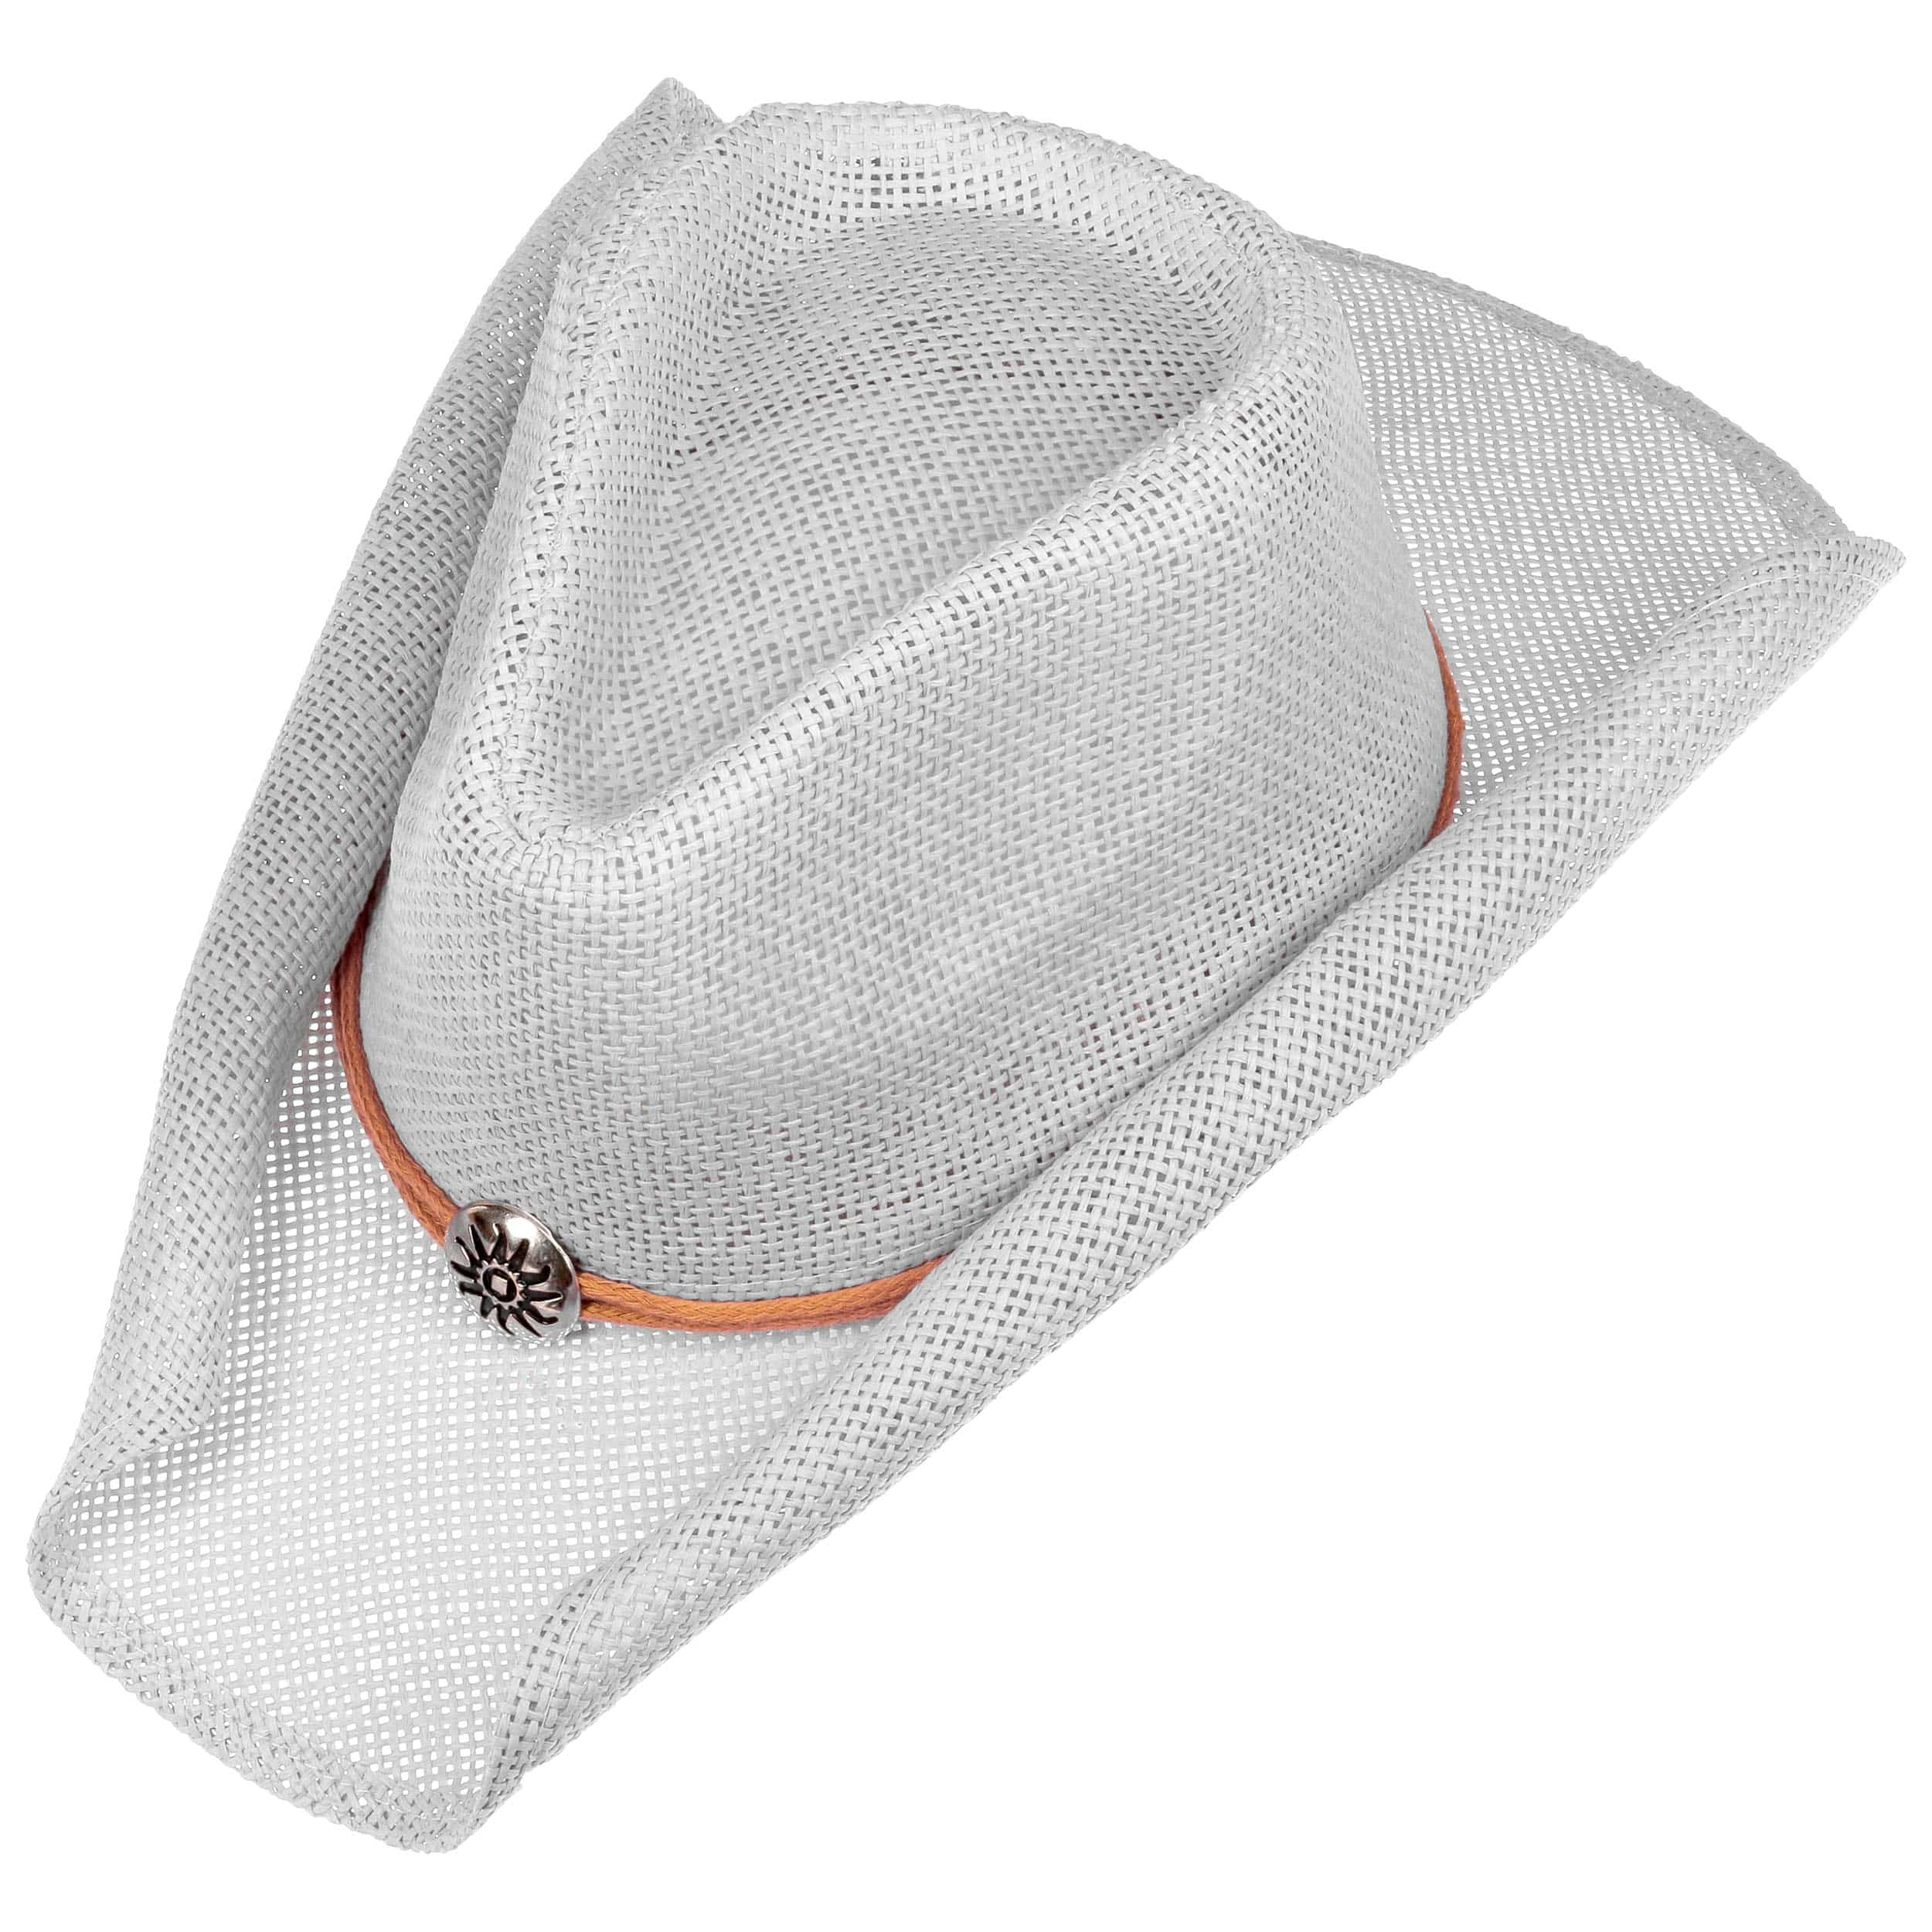 ... Yeehaw Kids Cowboy Hat by Lipodo - white 1 ... 62913c82dd4a